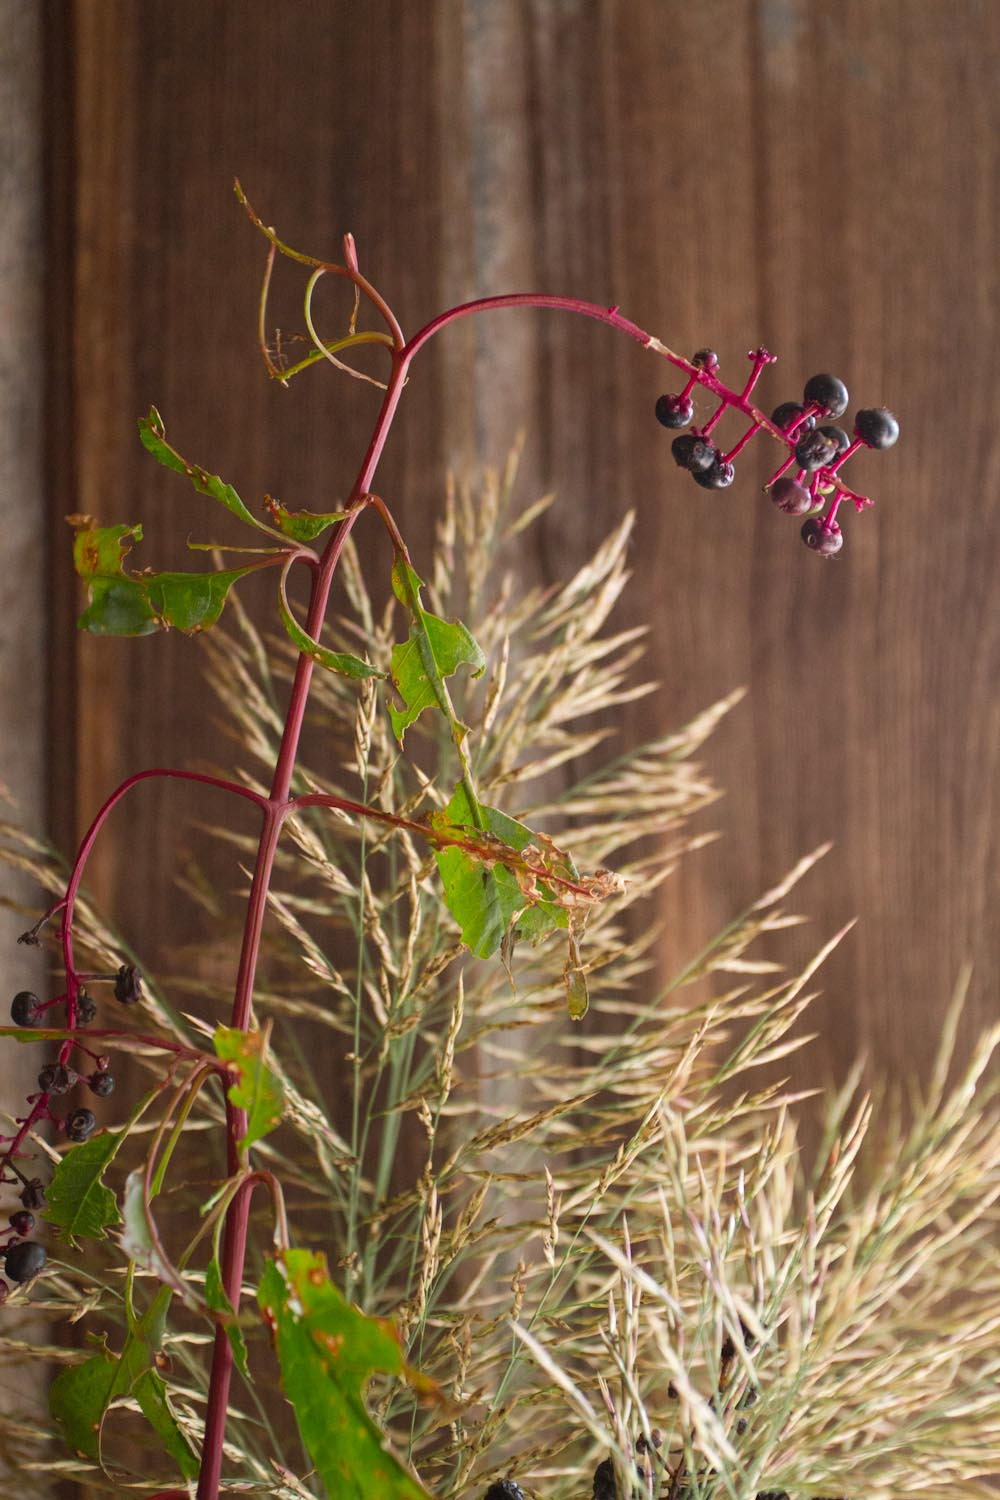 seasonal_bloom_fall fruits and grasses-4468.jpg